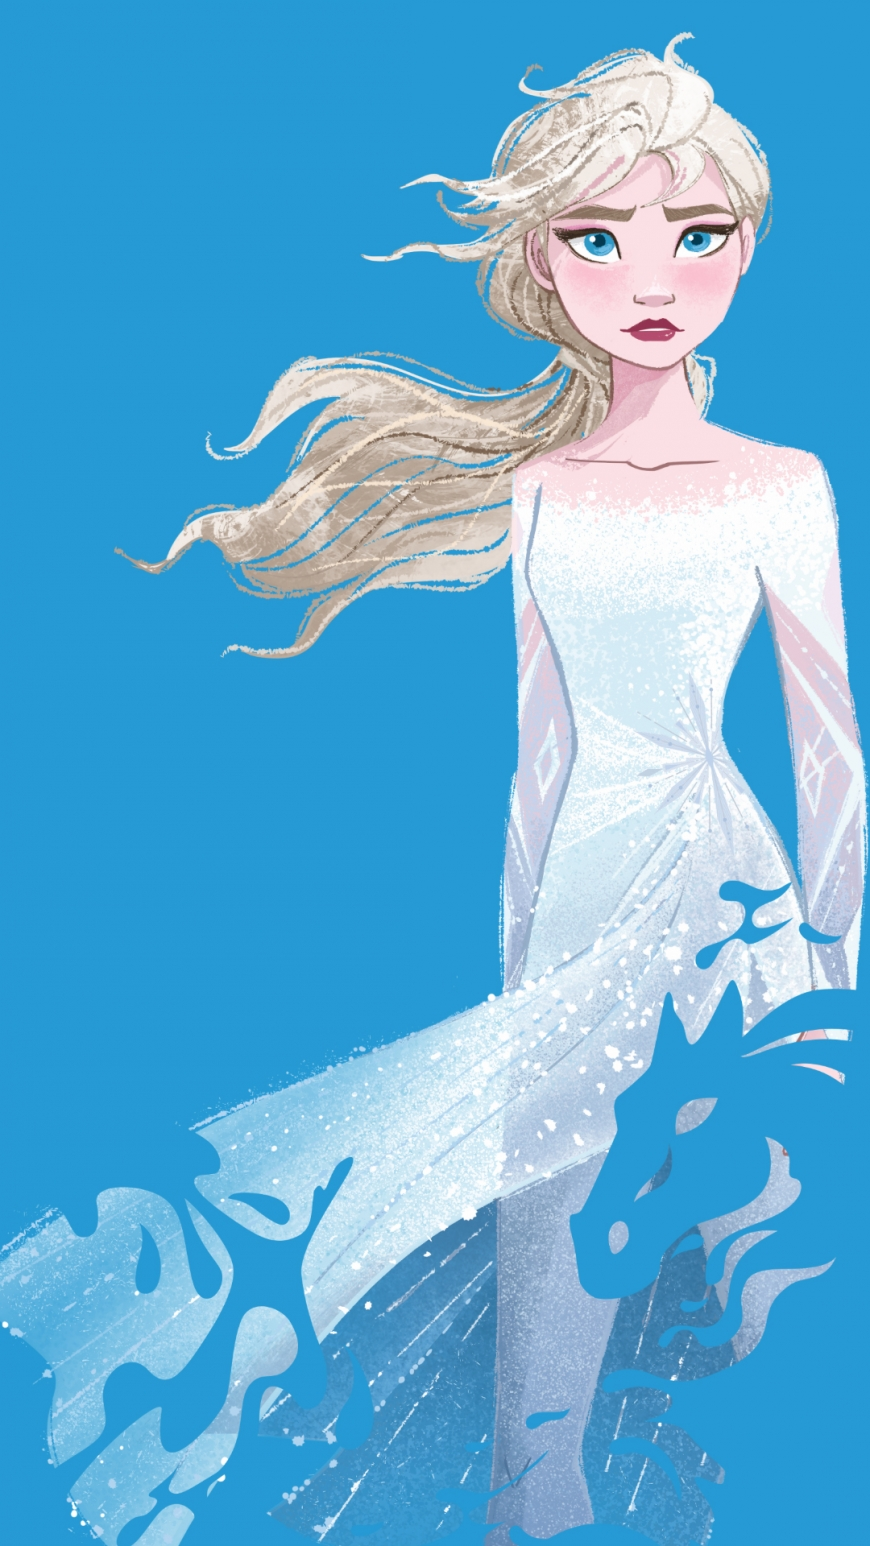 Big Frozen 2 Phone Wallpapers With Elsa Youloveit Com